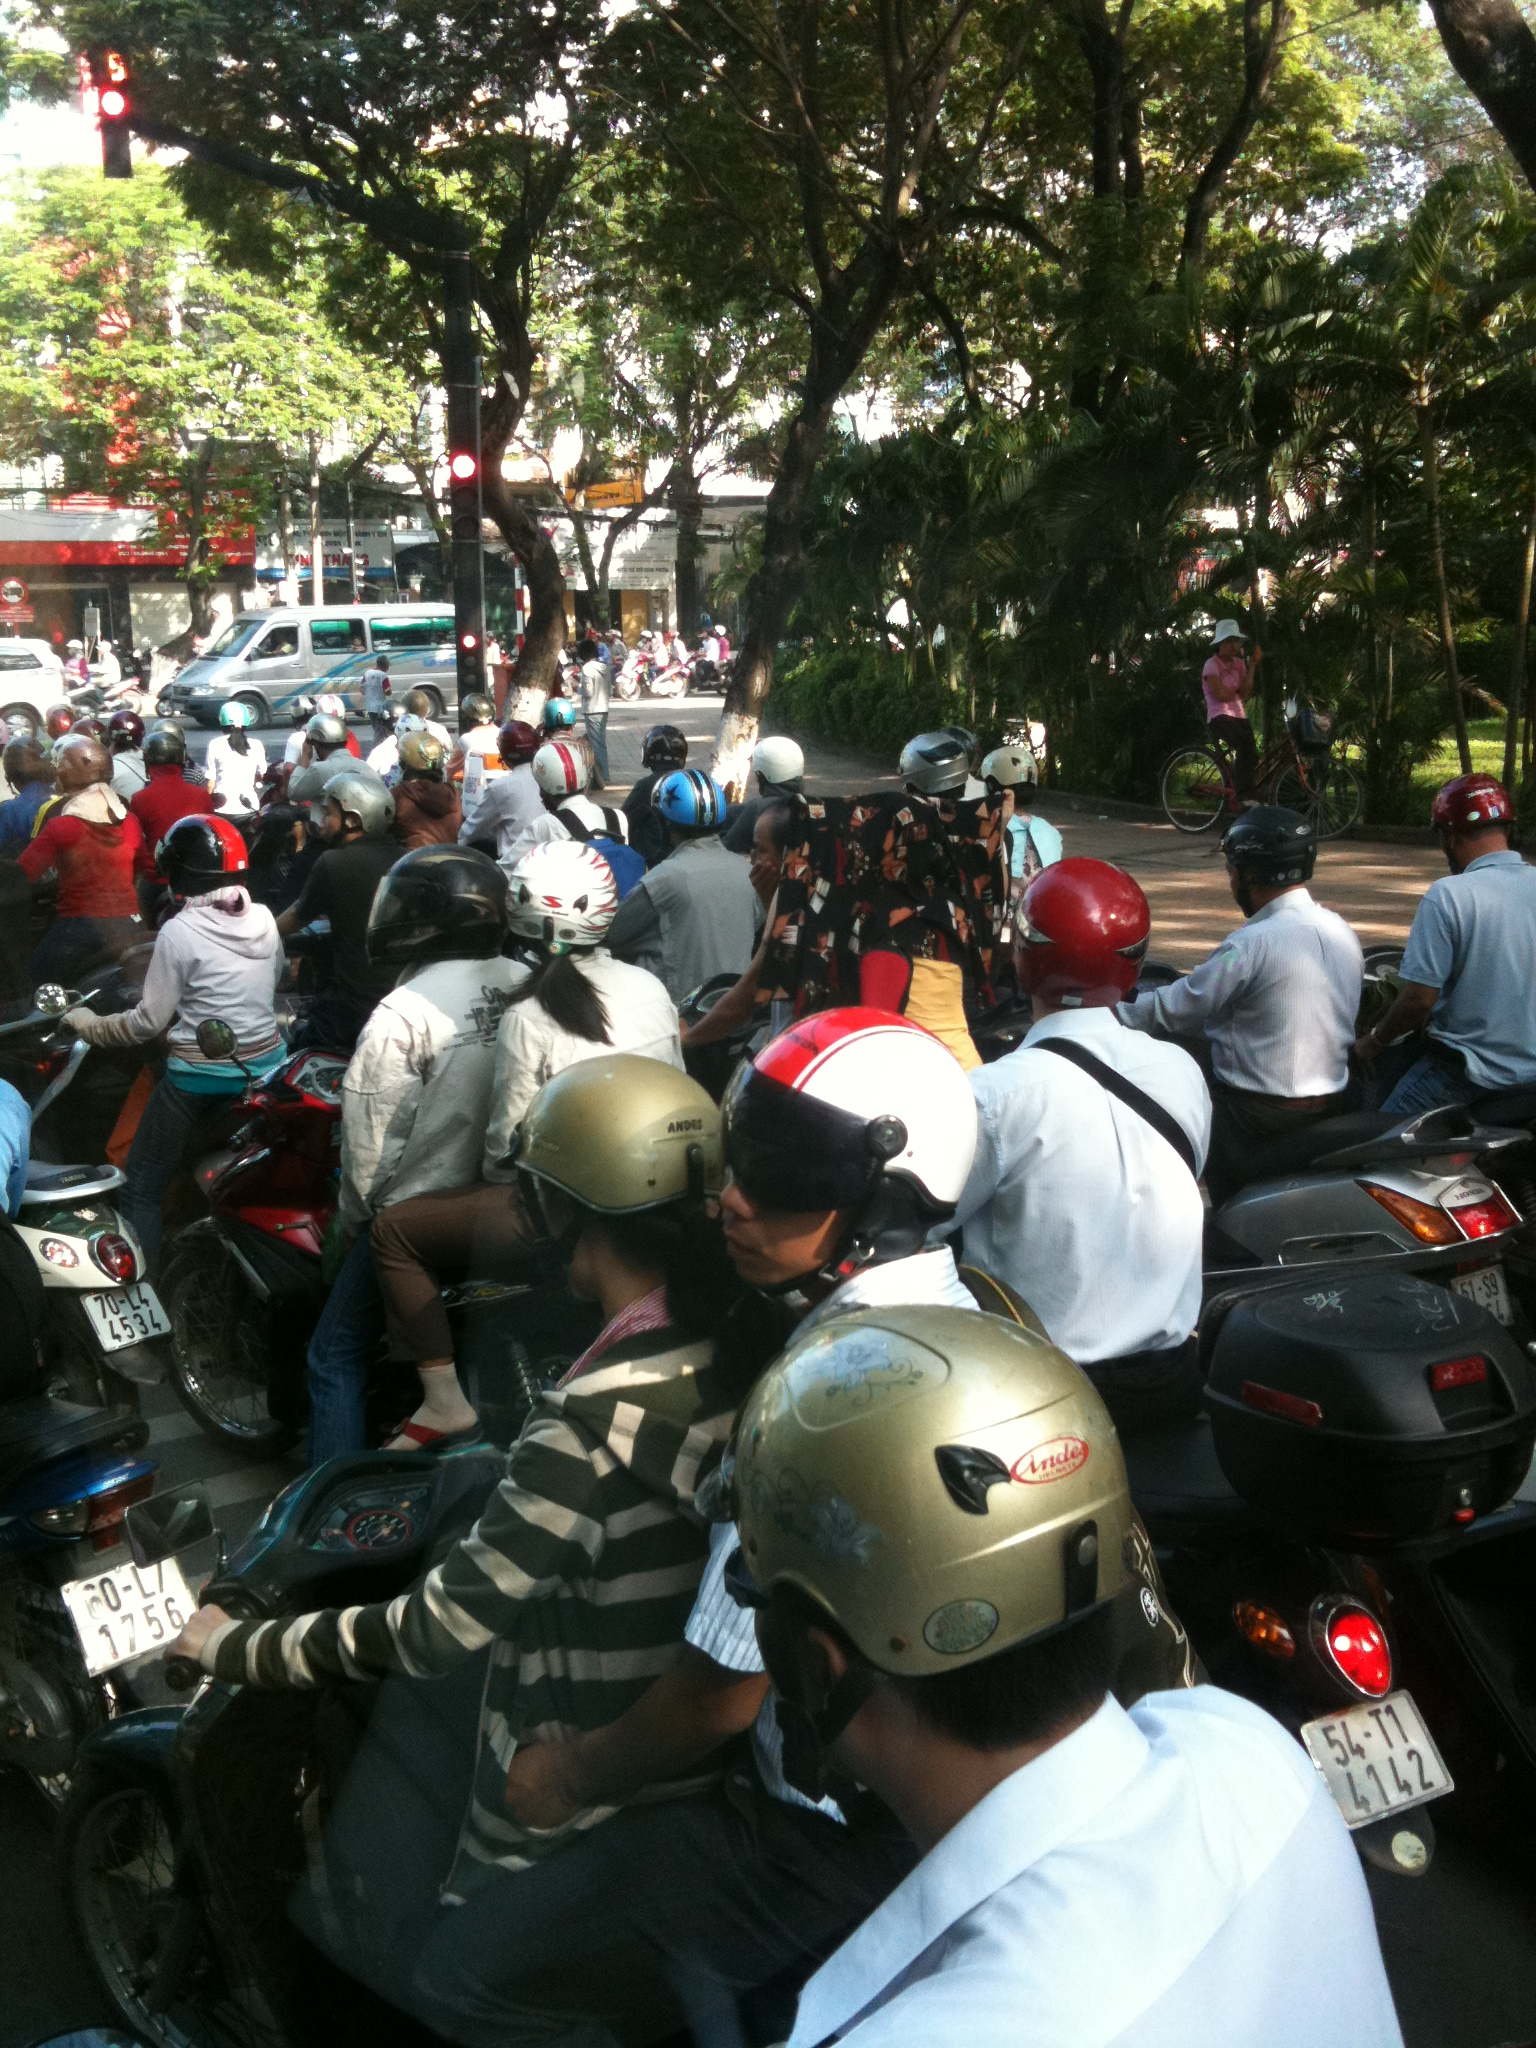 The traffic in Vietnam is seriously crazy! Take care crossing the road in Asia.